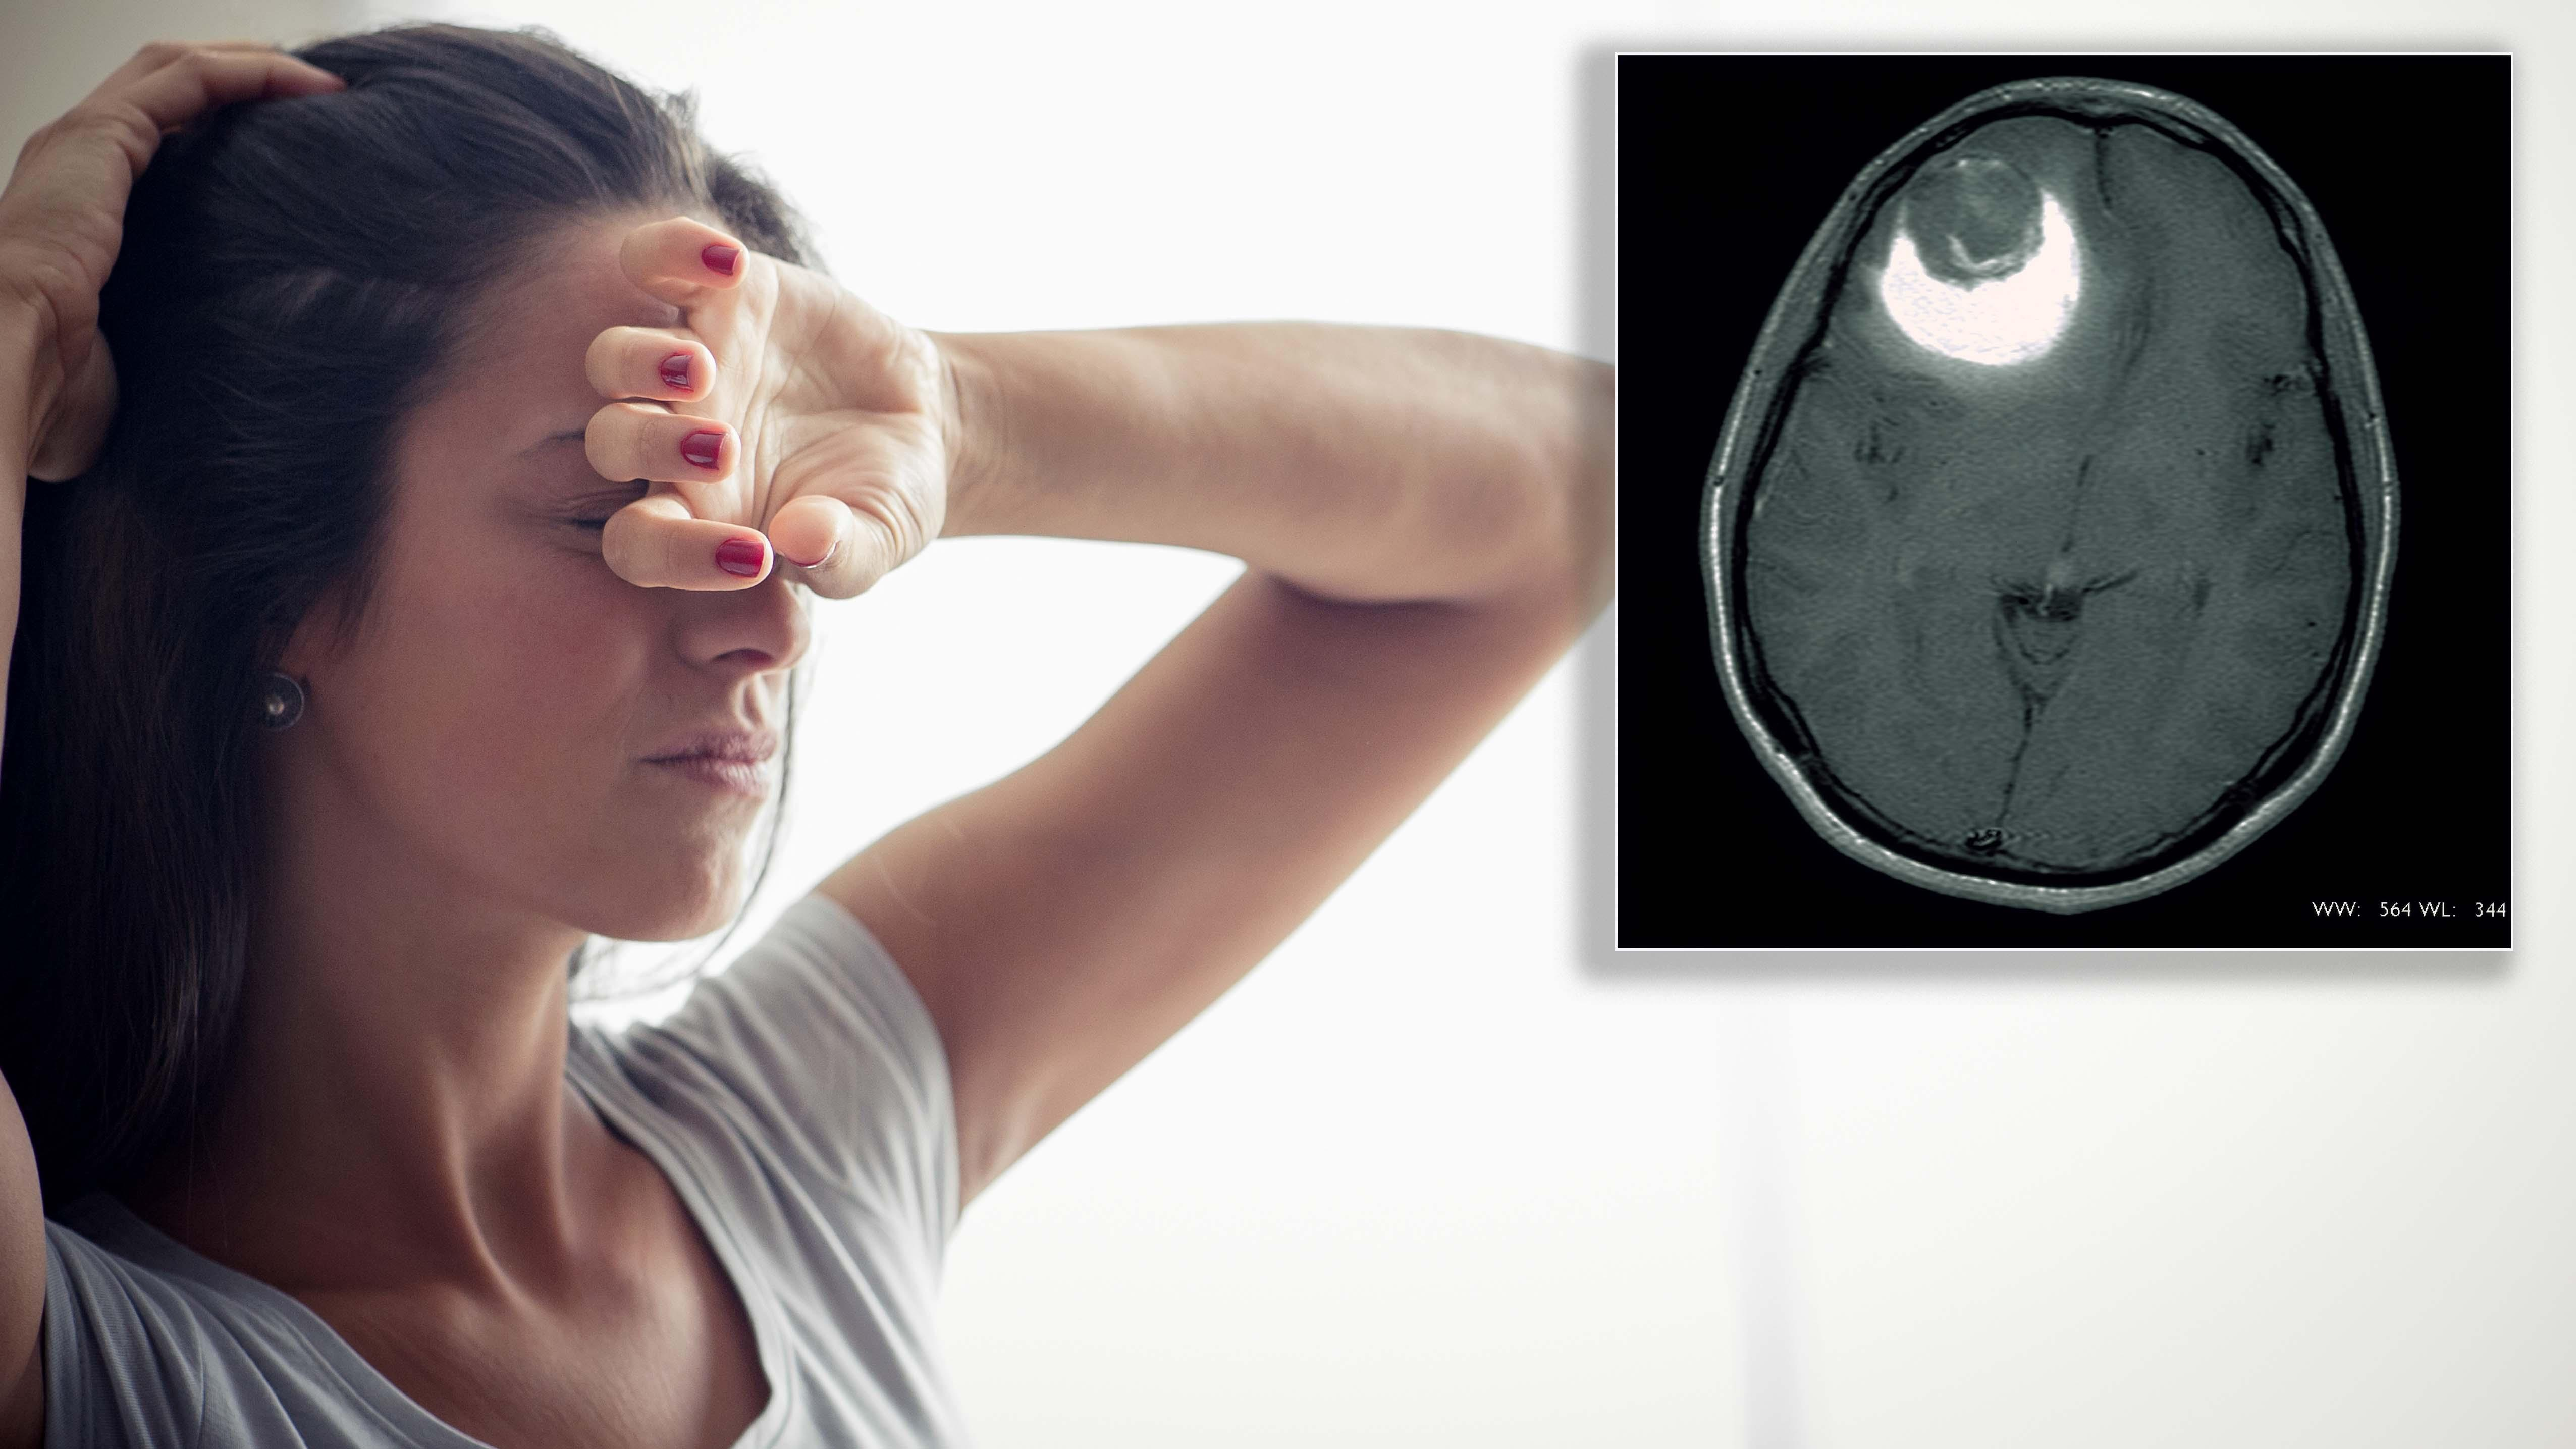 Burst cyst in woman's brain misdiagnosed as migraines